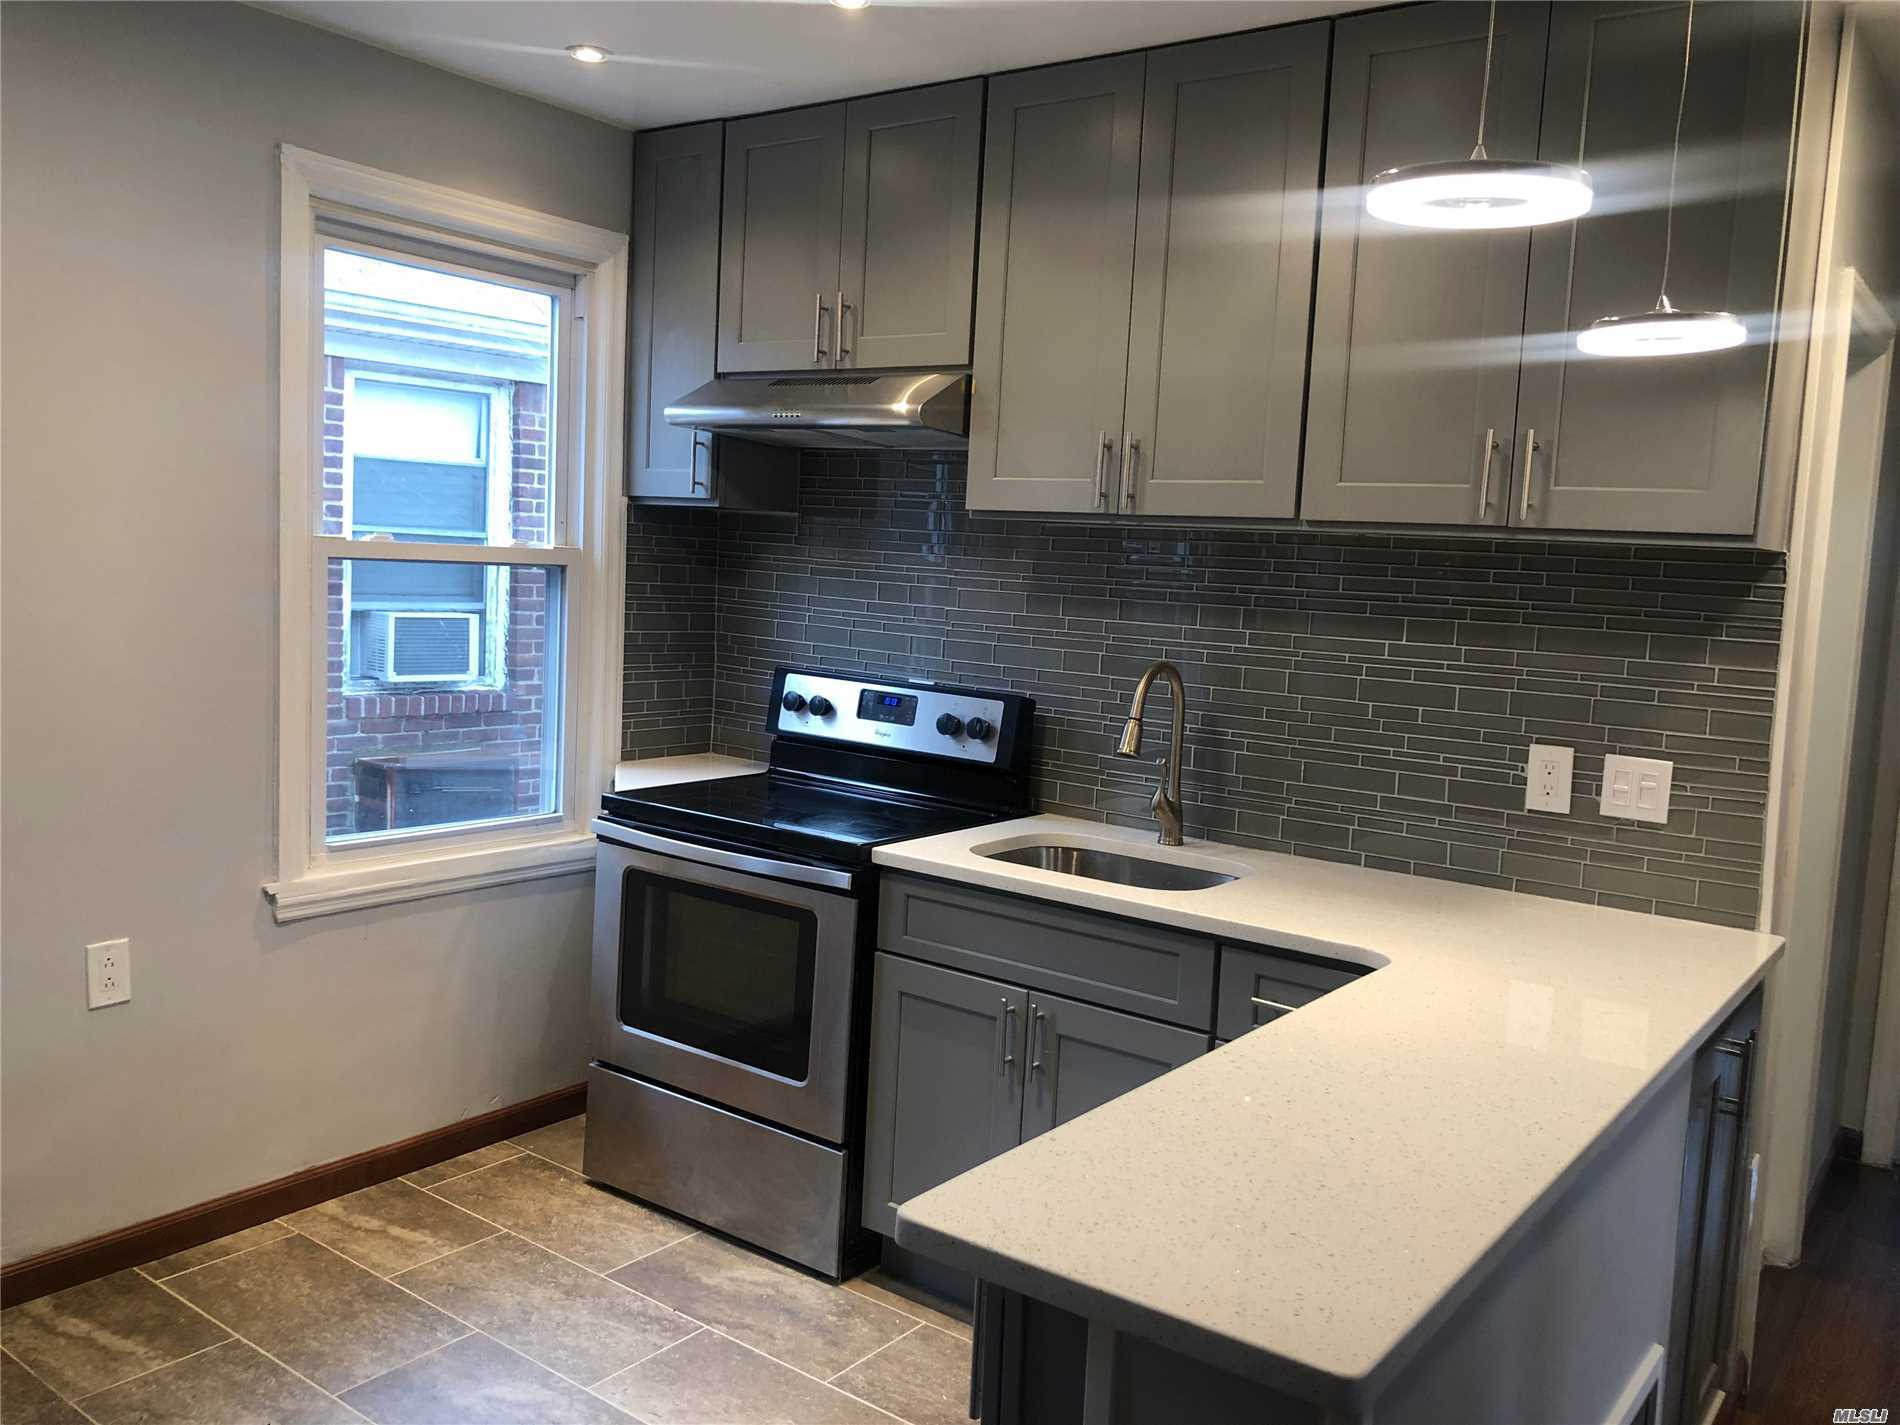 Welcome to this Beautifully & completely renovated 2 Bedroom apartment in in the exclusive Crescent section of Rego Park. Modern kitchen w/ new cabinets and stunning granite countertop along with stainless steel appliances. New wall to wall tiled bathroom. Plenty of storage/closets. New flooring throughout. Huge Balcony included. Close to many bus lines on Woodhaven Blvd and 15 minute walk to 63rd Dr & 67th Ave subway station. Steps to P.S. 174 & playground! plenty of off street parking.